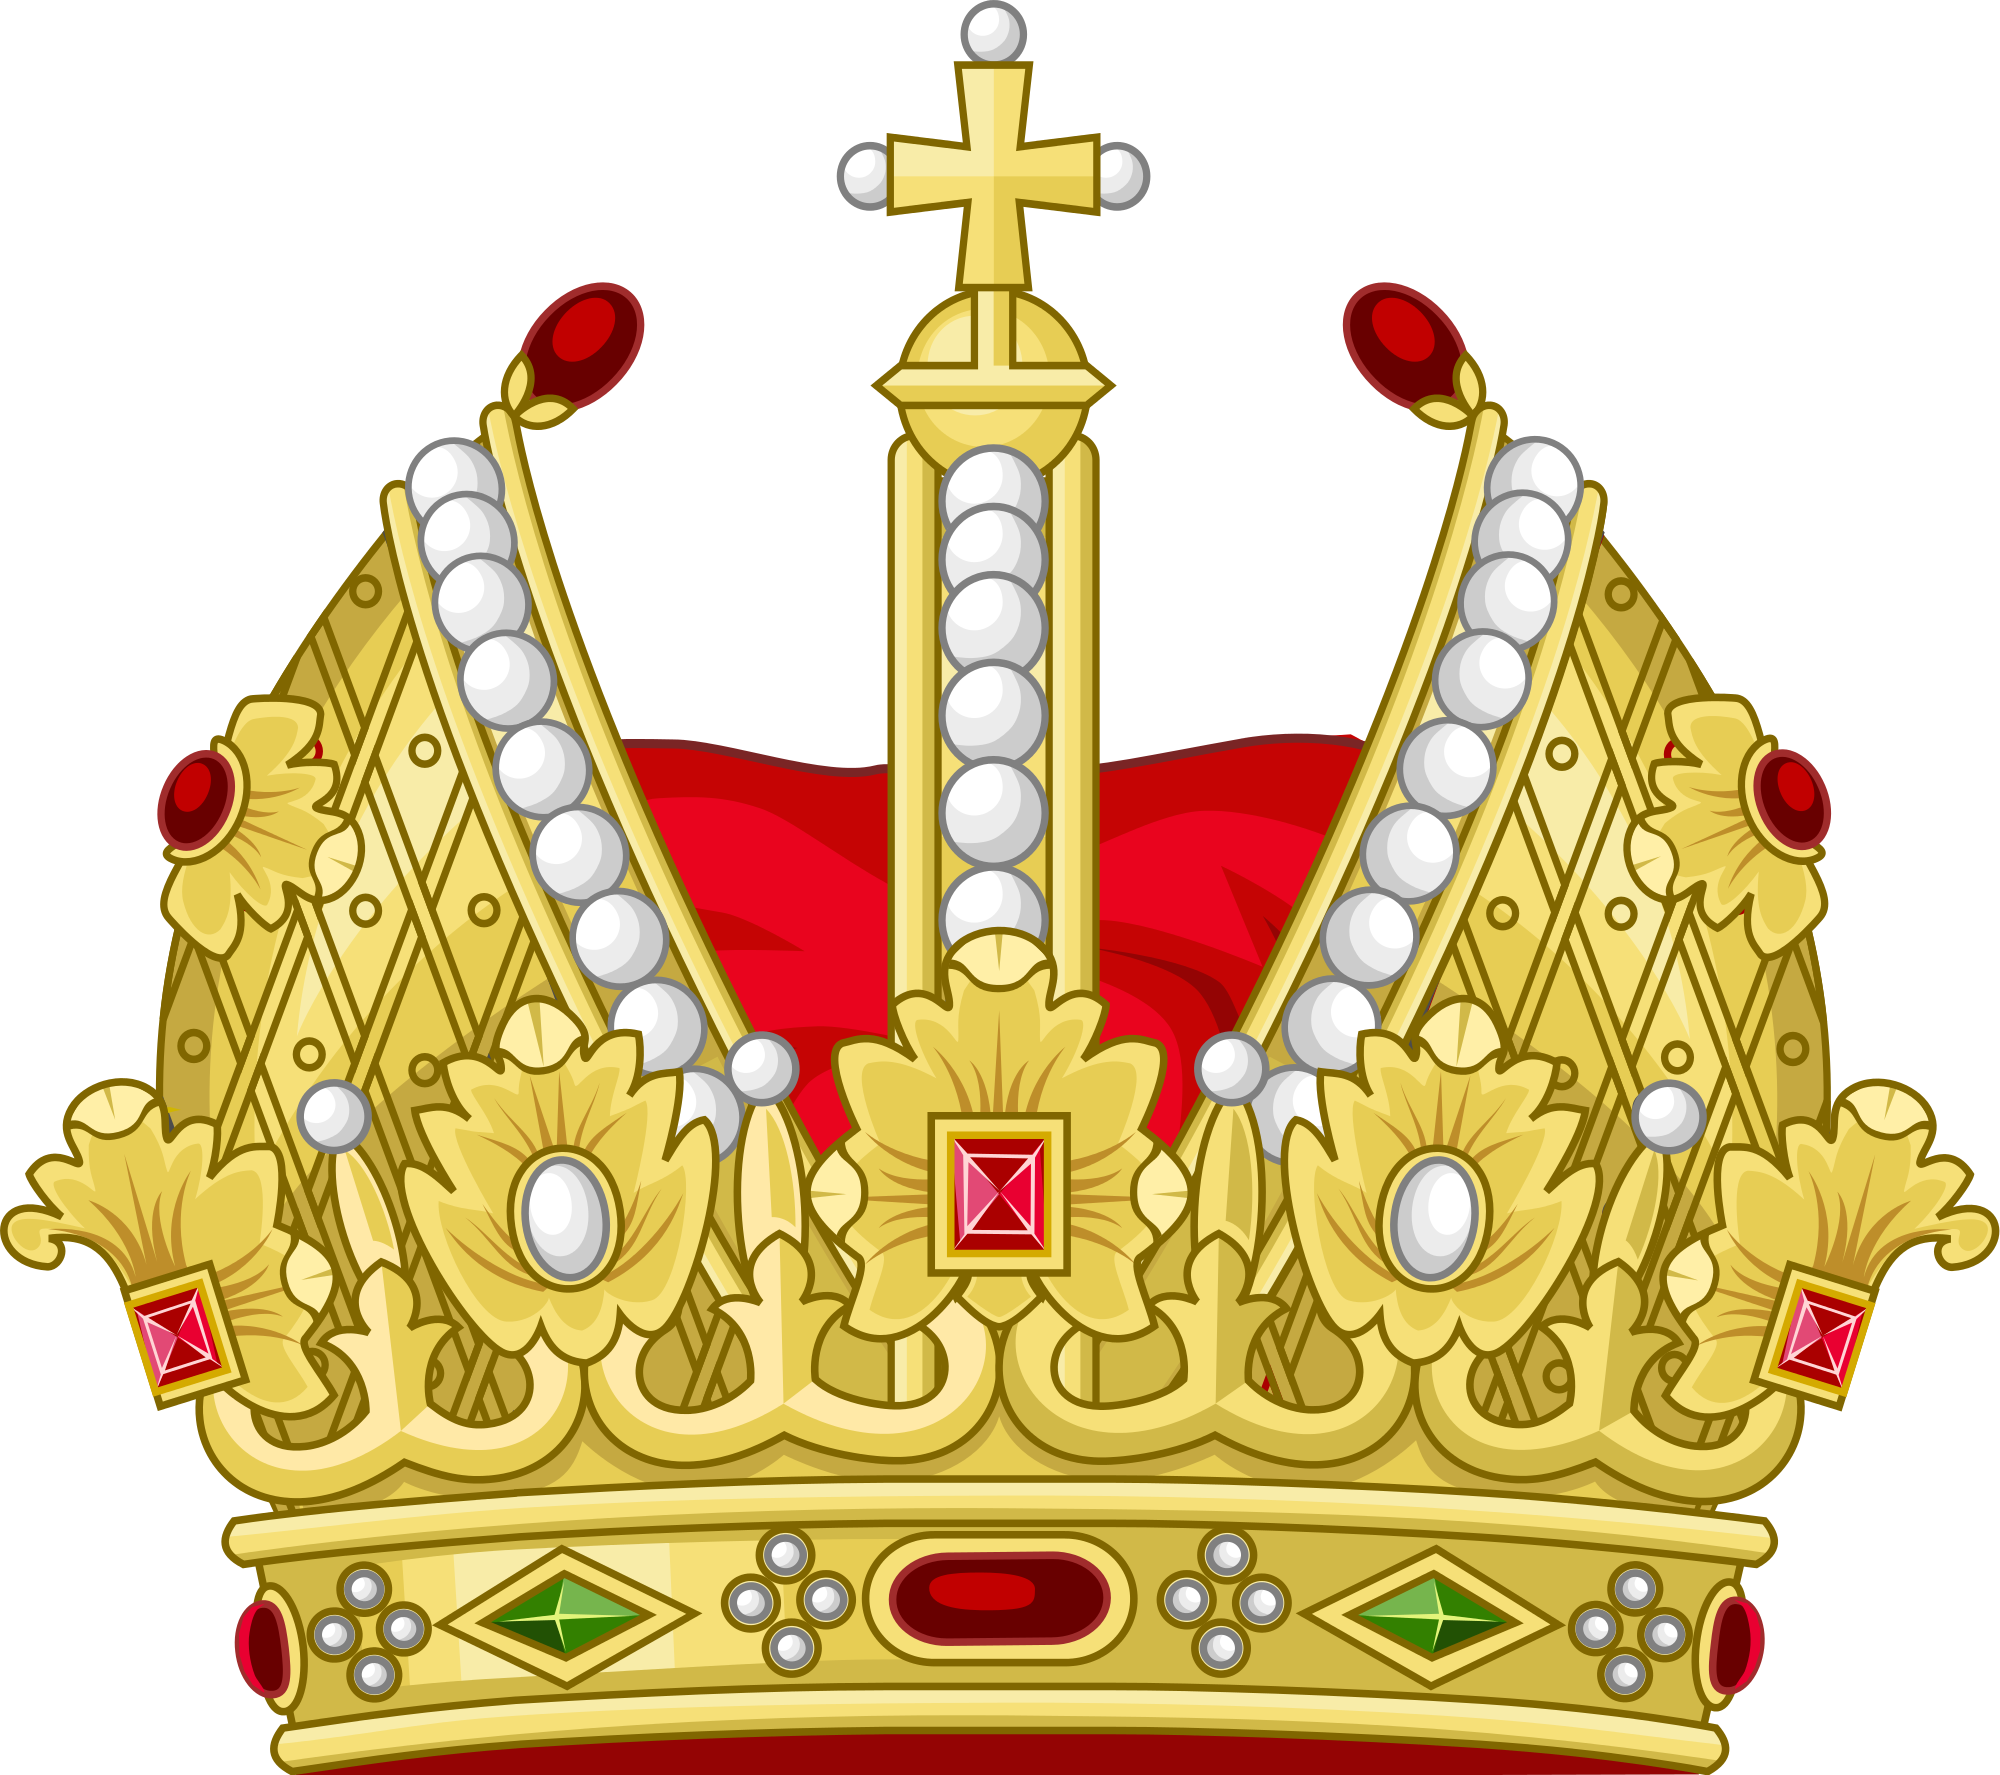 Xv crown clipart svg black and white stock Crowns clipart emperor crown - Graphics - Illustrations - Free ... svg black and white stock